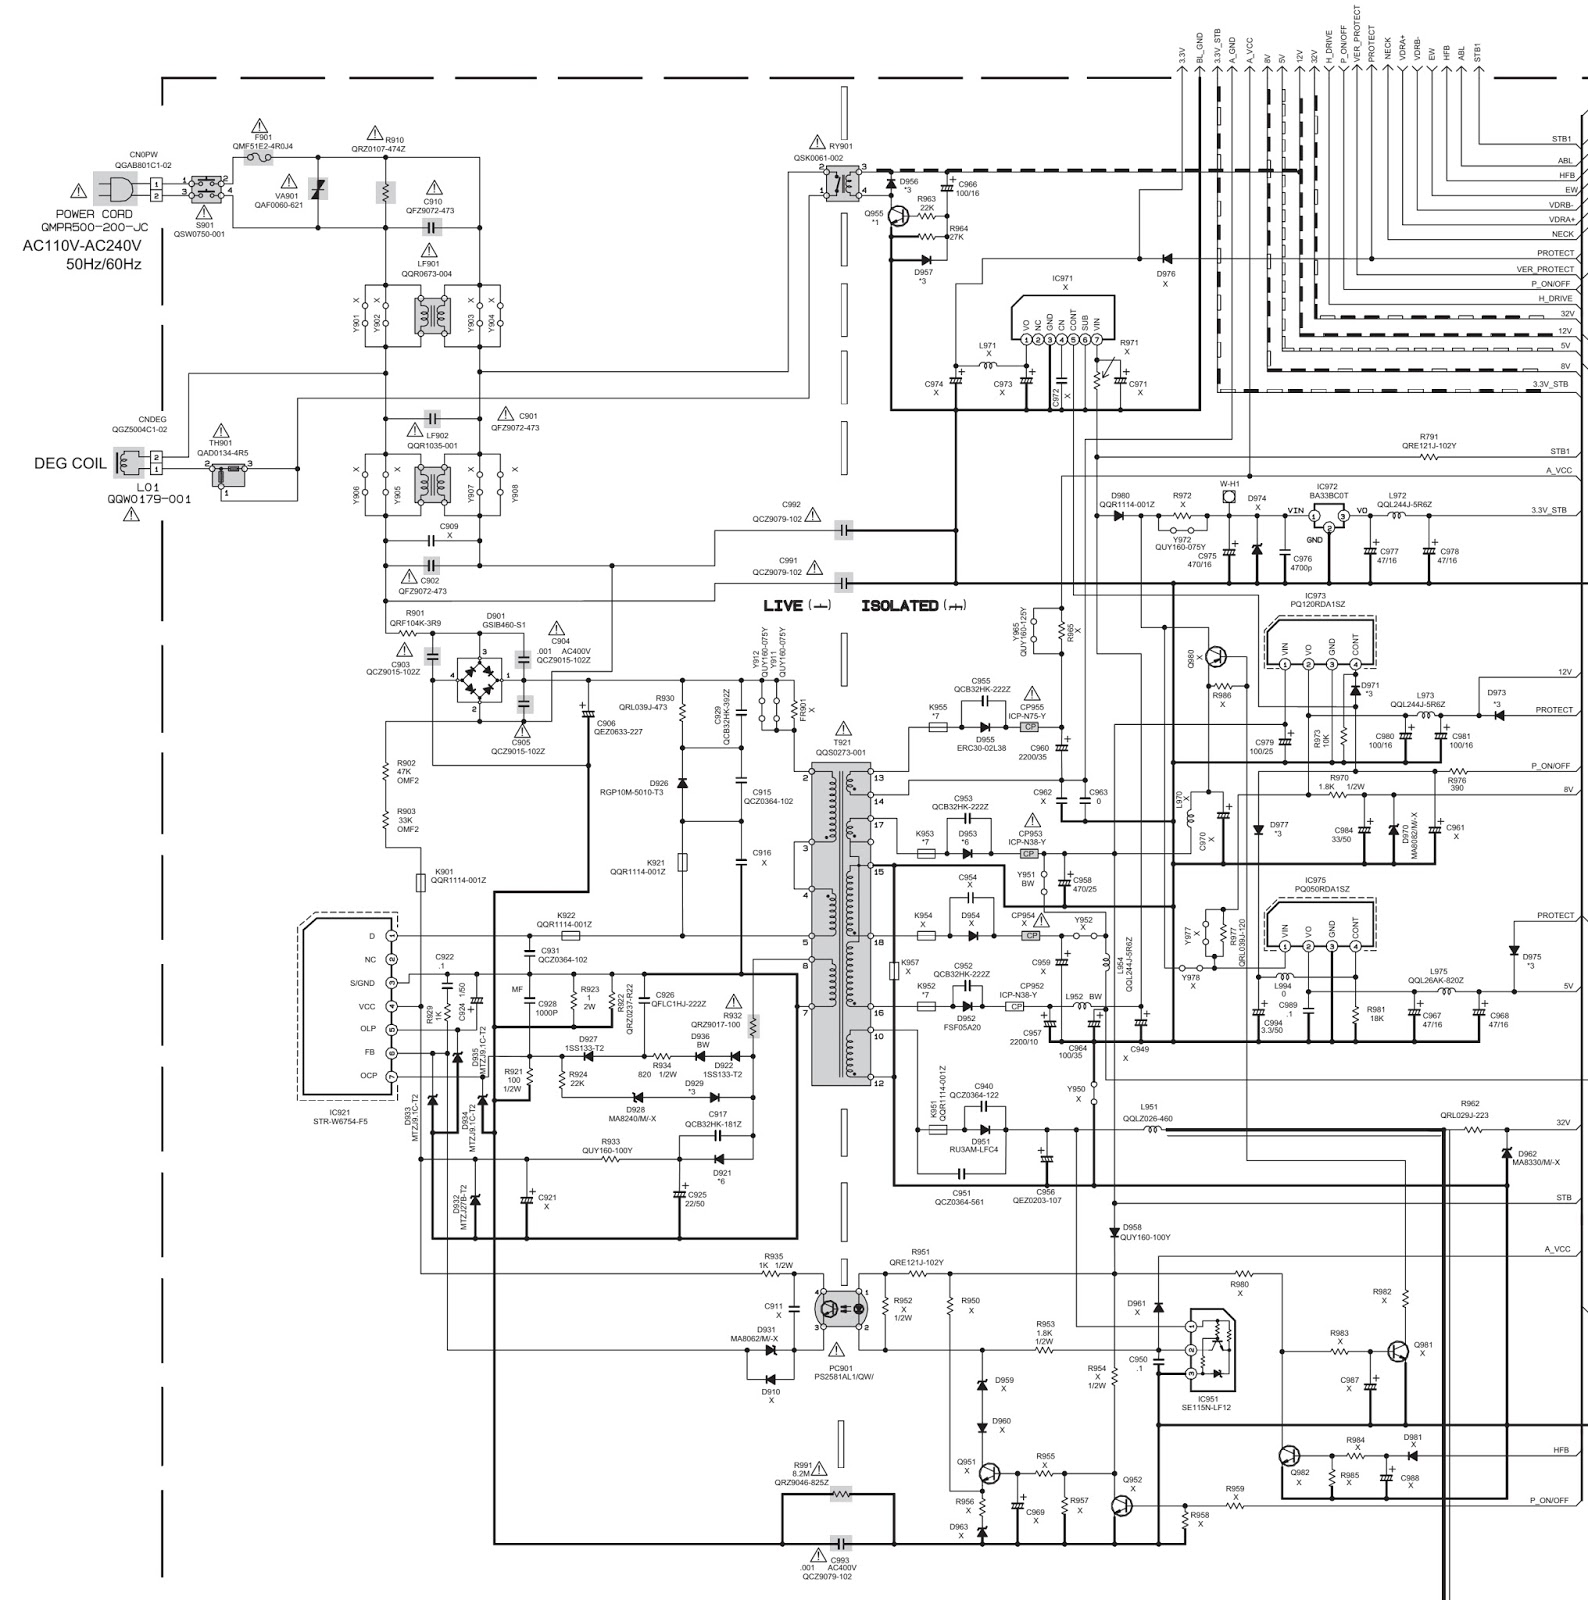 Panasonic Tv Schematic Diagram Tc, Panasonic, Get Free